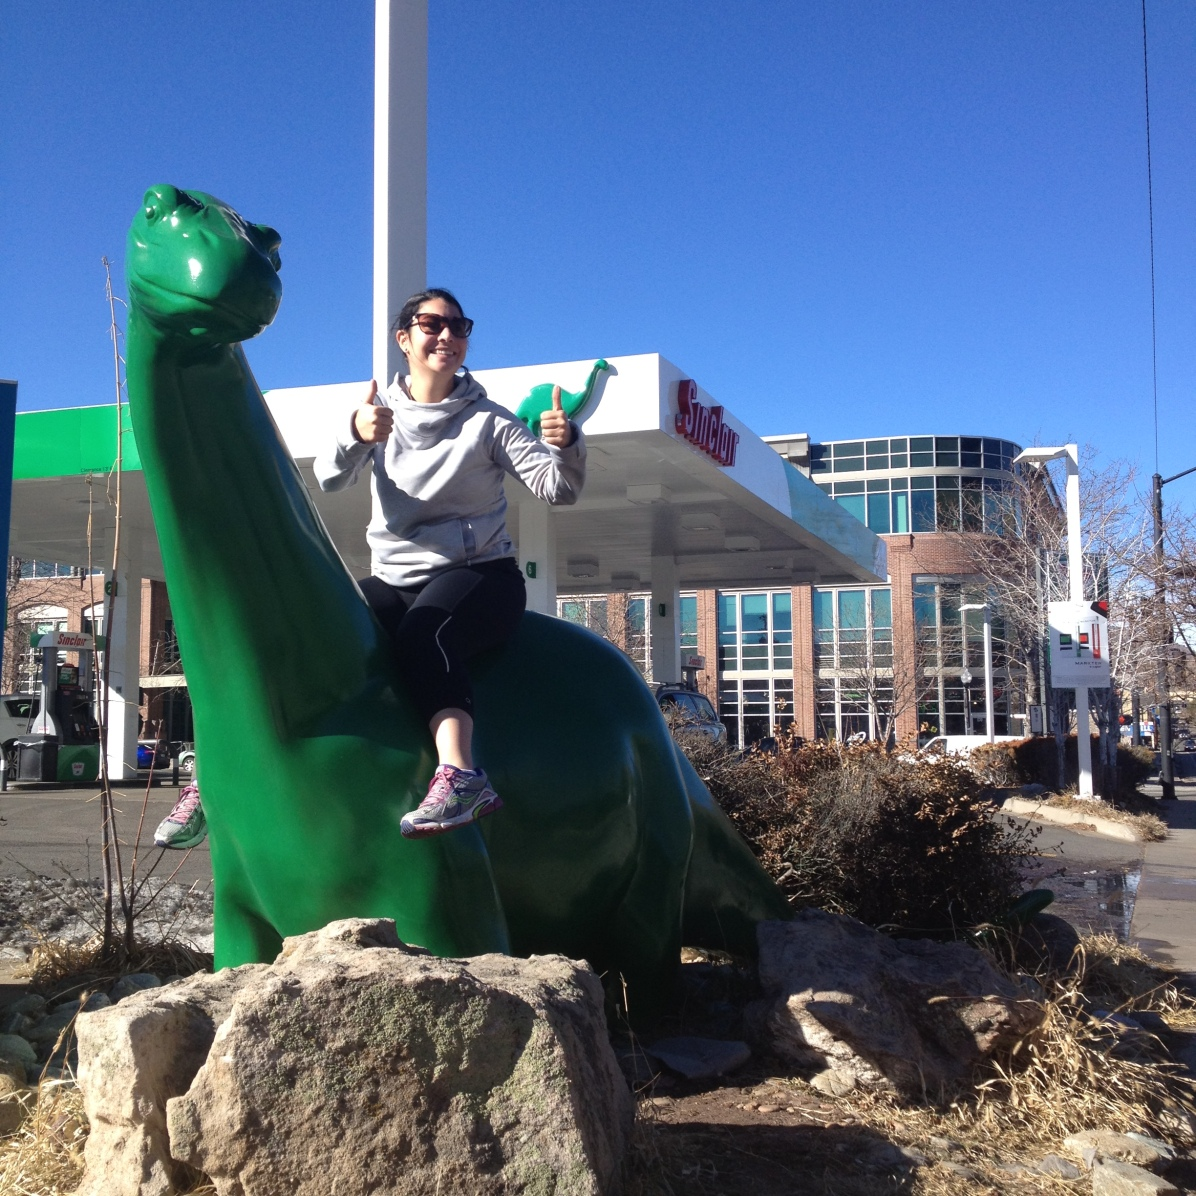 When you see a large green dinosaur, you hop on. Duh.